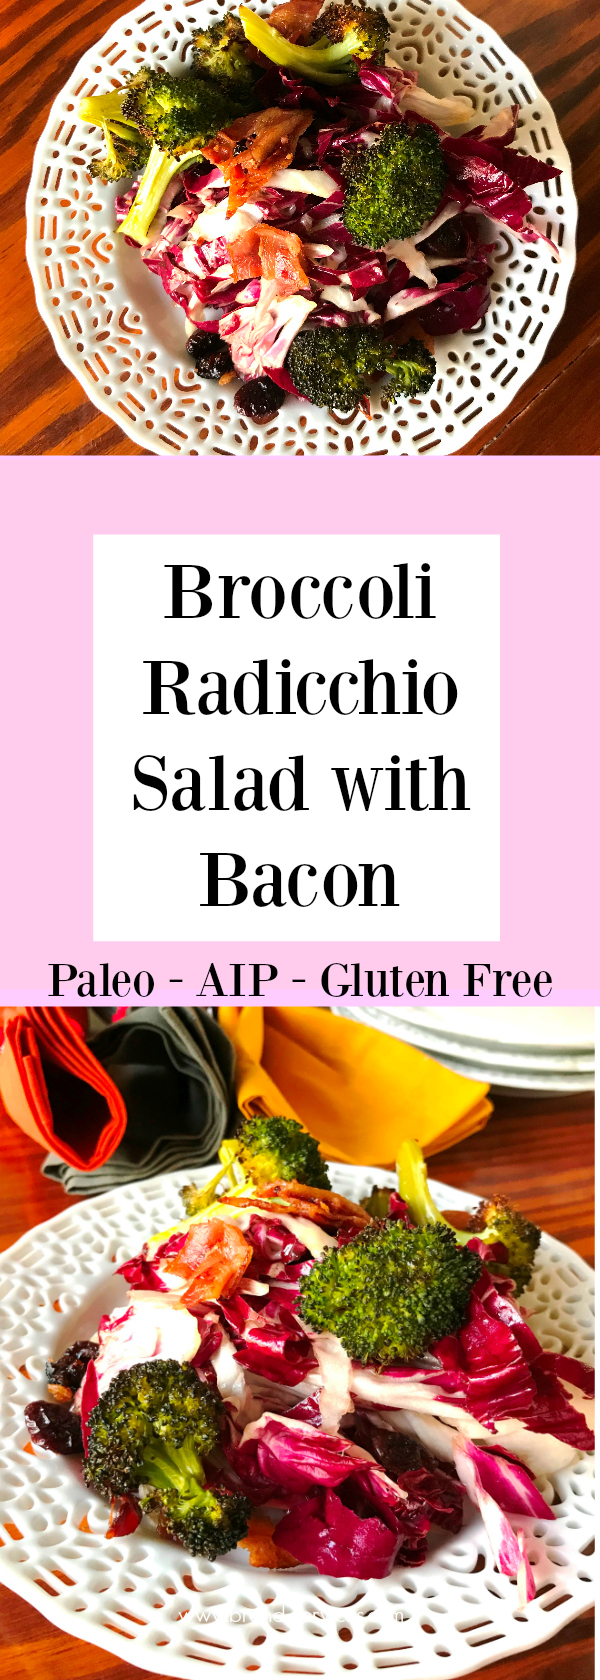 Broccoli Radicchio Salad with Bacon Paleo AIP Gluten Free